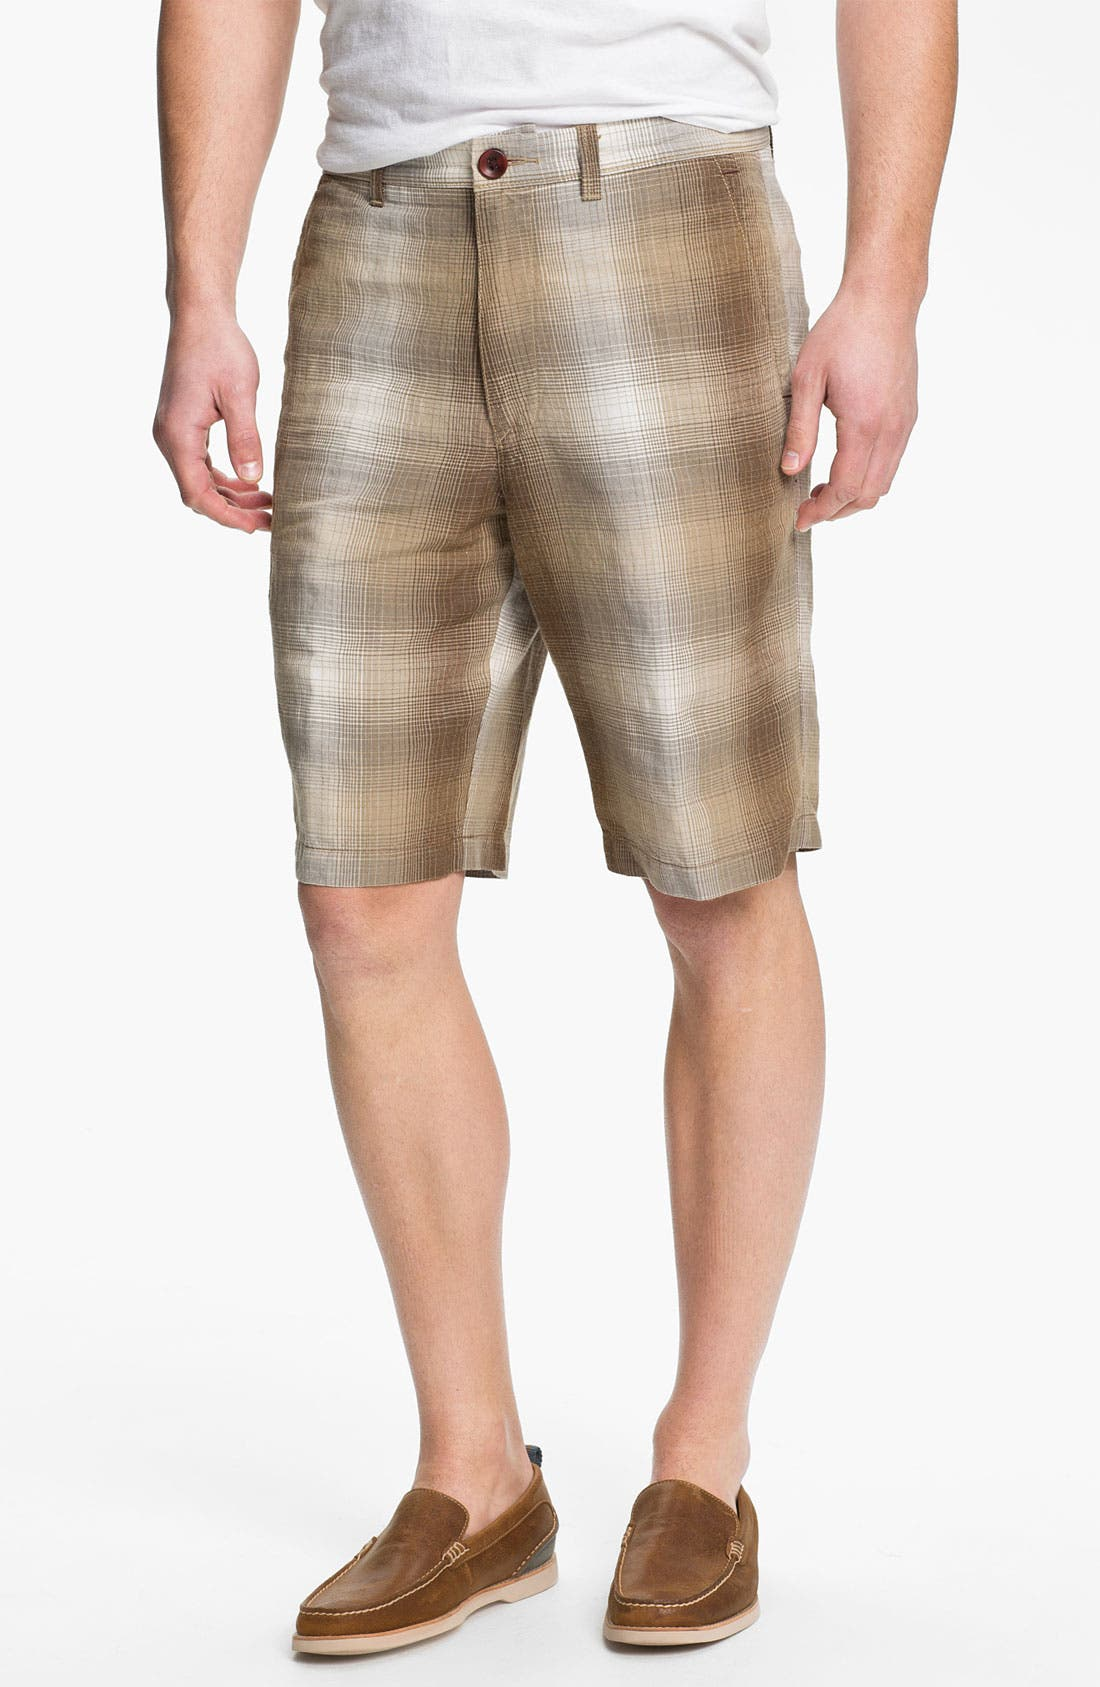 Alternate Image 1 Selected - Tommy Bahama 'Balken' Plaid Shorts